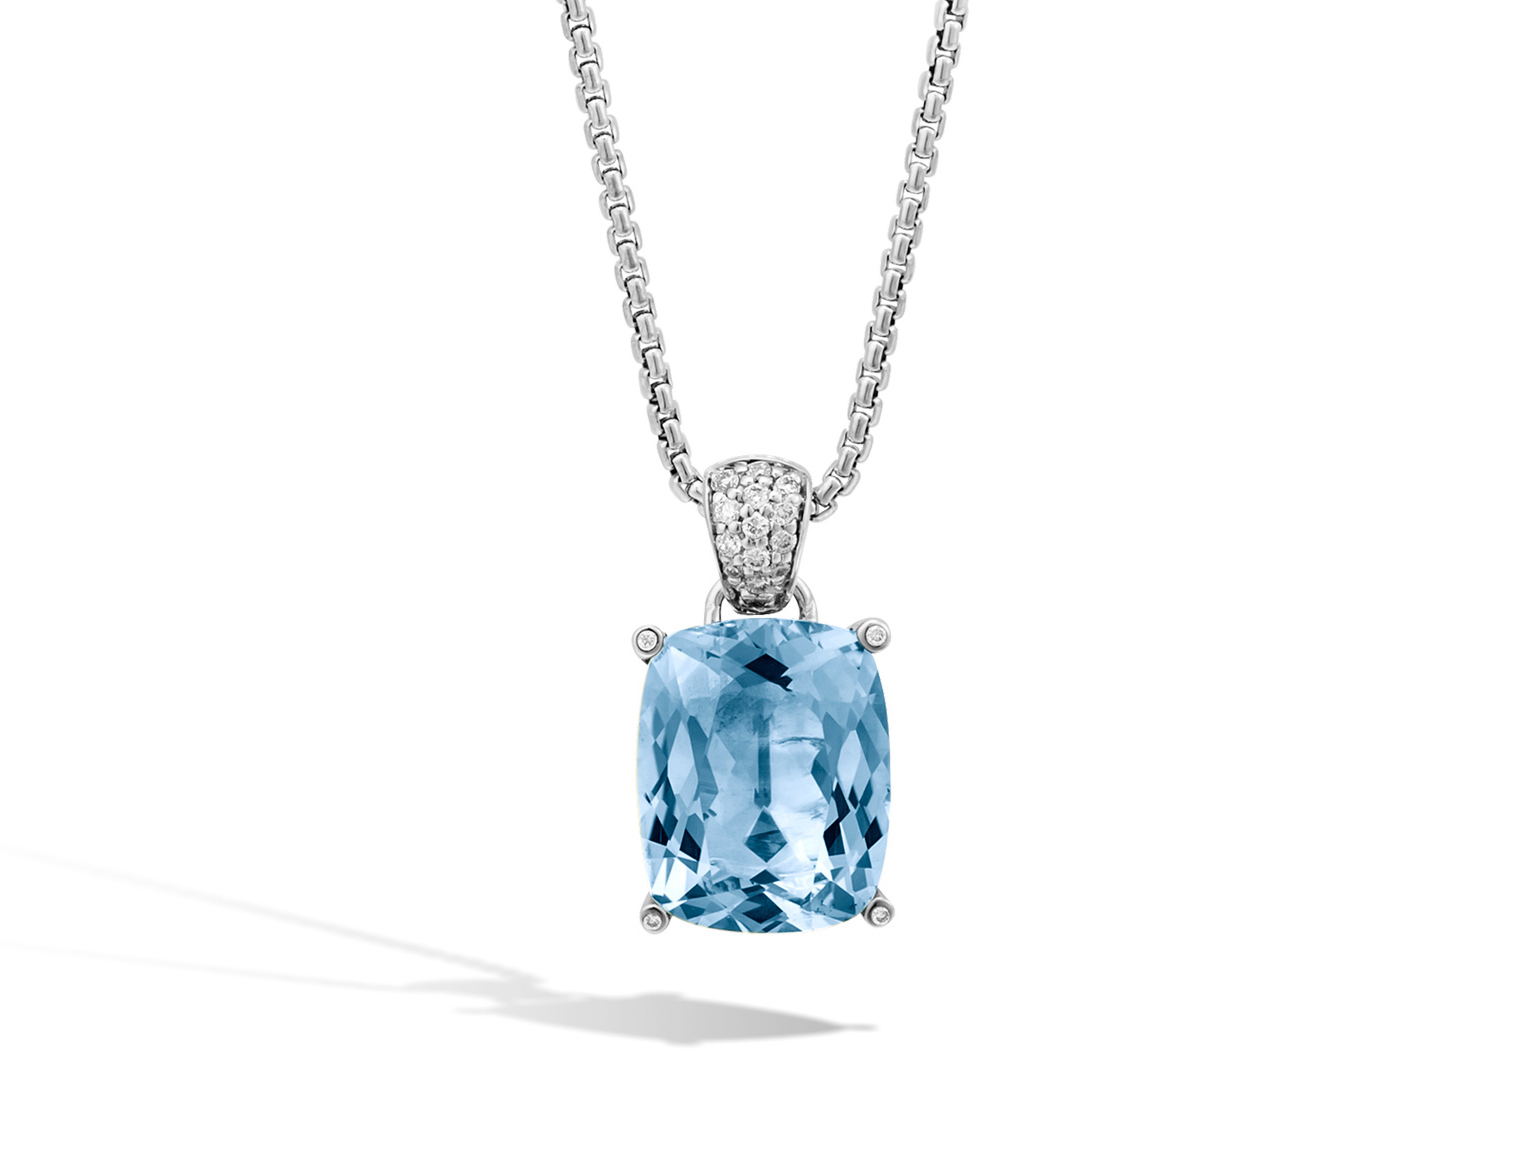 diamond birks en and pendant topaz blue silver tube necklace muse letter